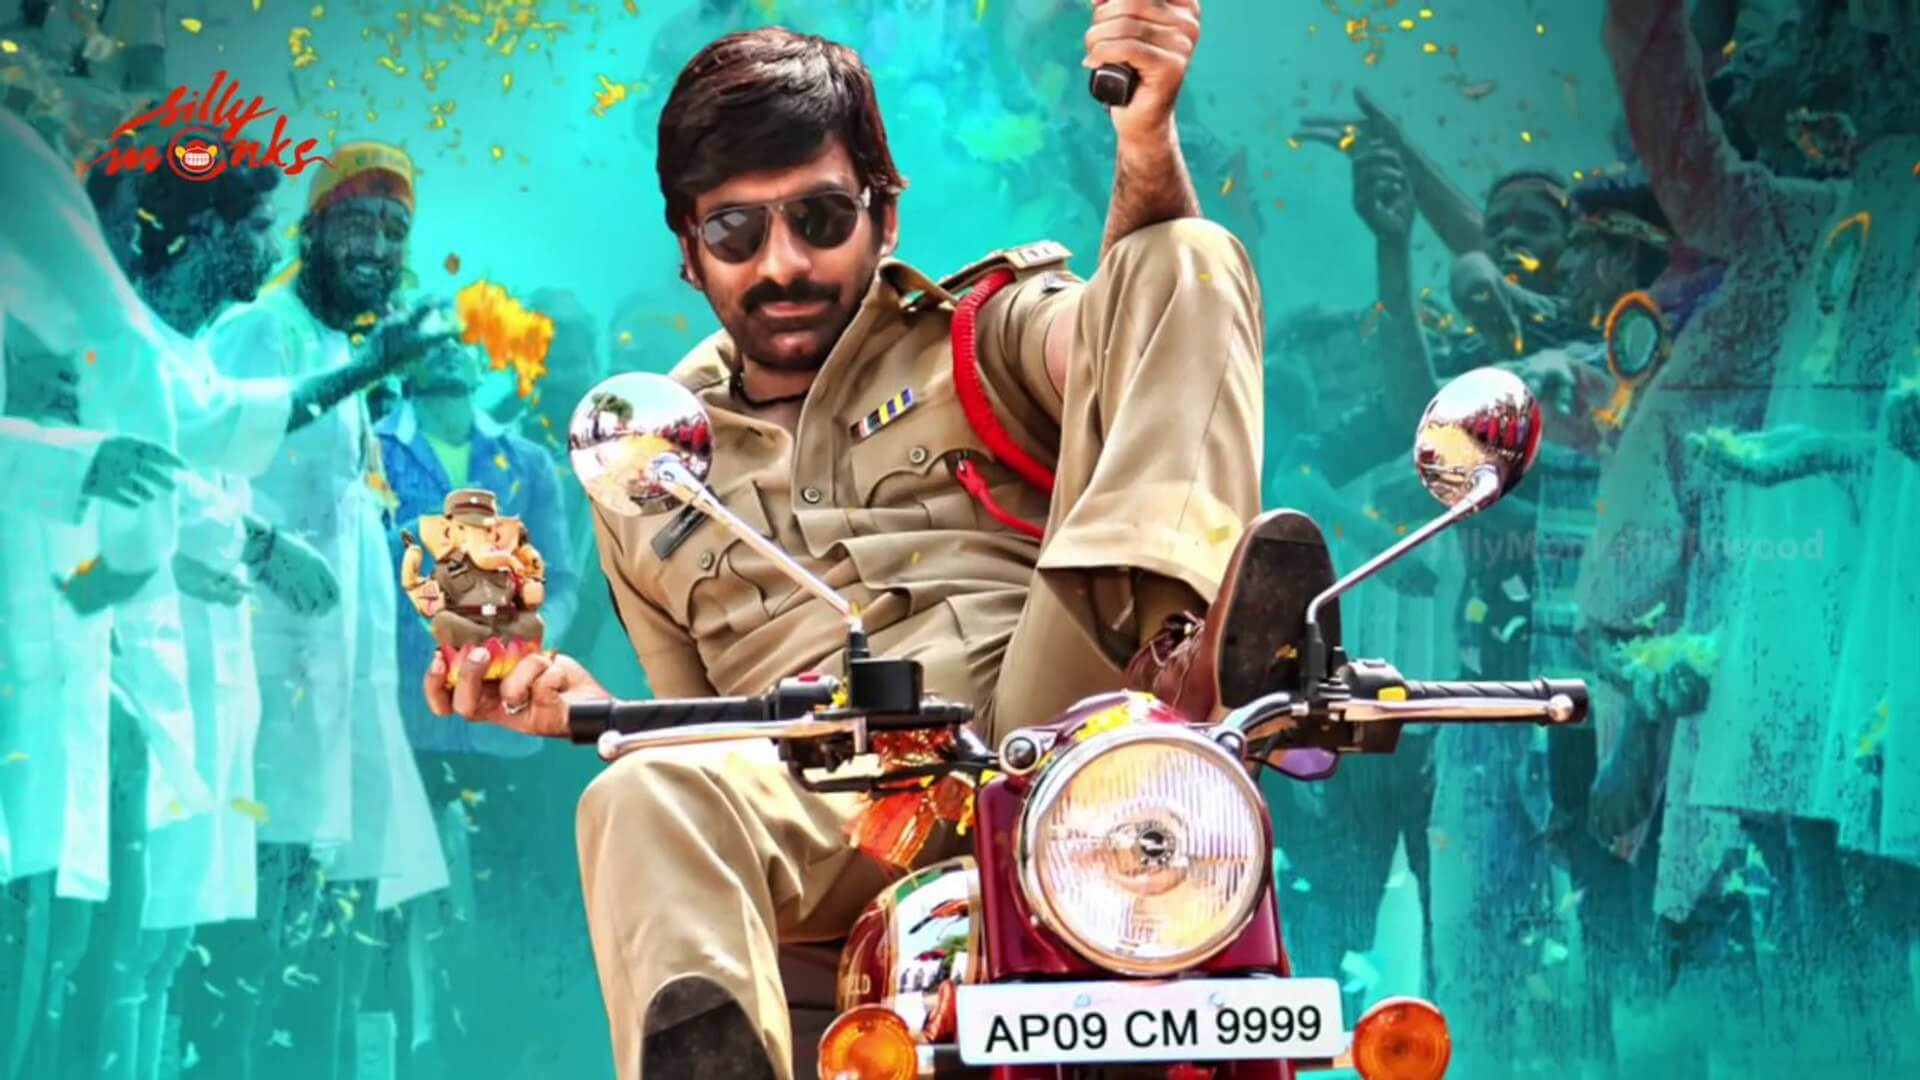 Ravi Teja Movie, Photos(images), Date Of Birth, Family, Brother, Height, Biography, Net Worth, Age, Wife, Details, Education, Instagram, Twitter, Wiki, Imdb, Facebook, Hairstyle, Youtube (58)